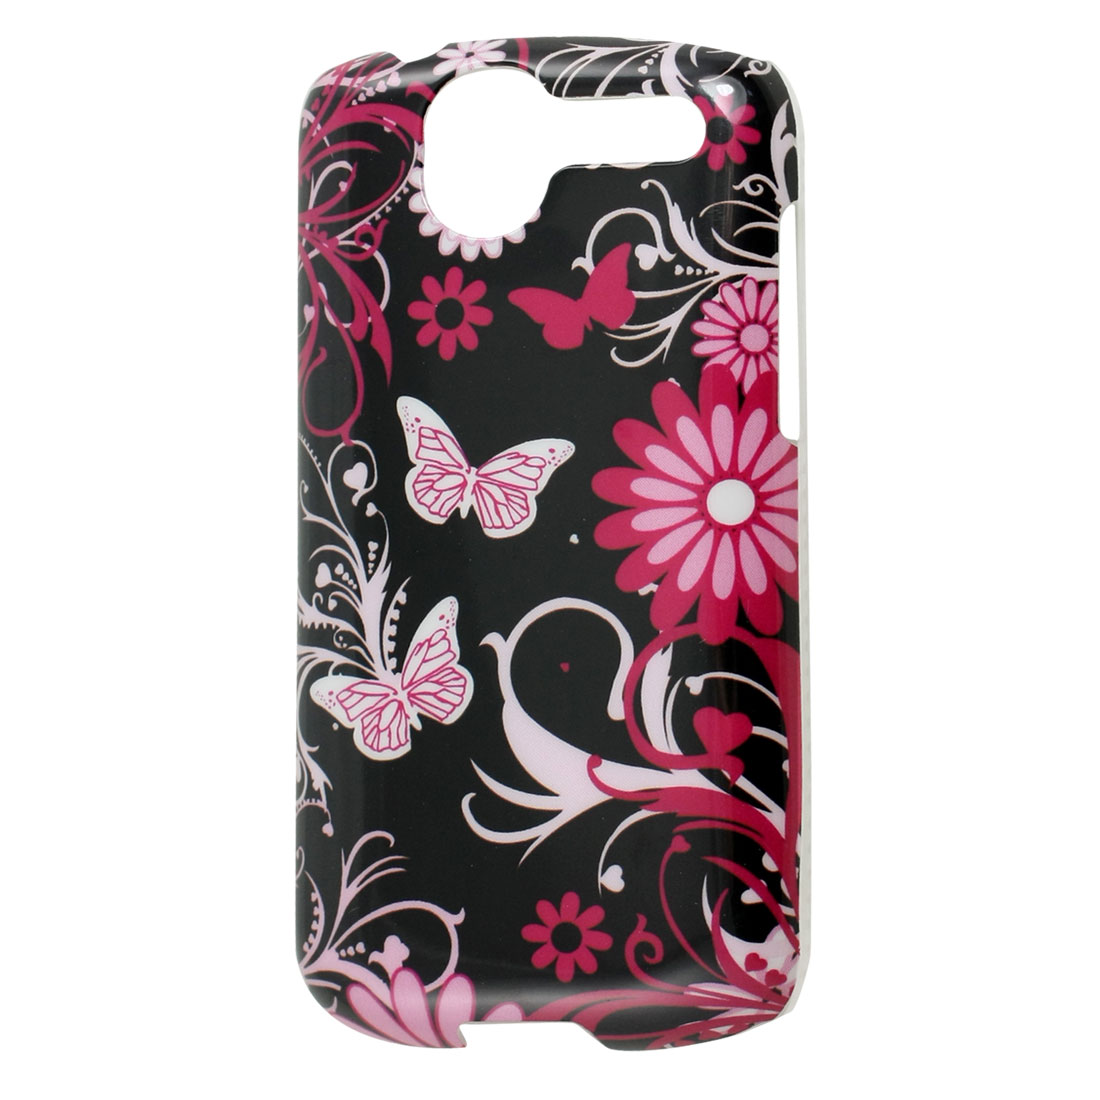 Textured Clear Brim Butterfly Flower Printed IMD Black Plastic Cover for HTC G7